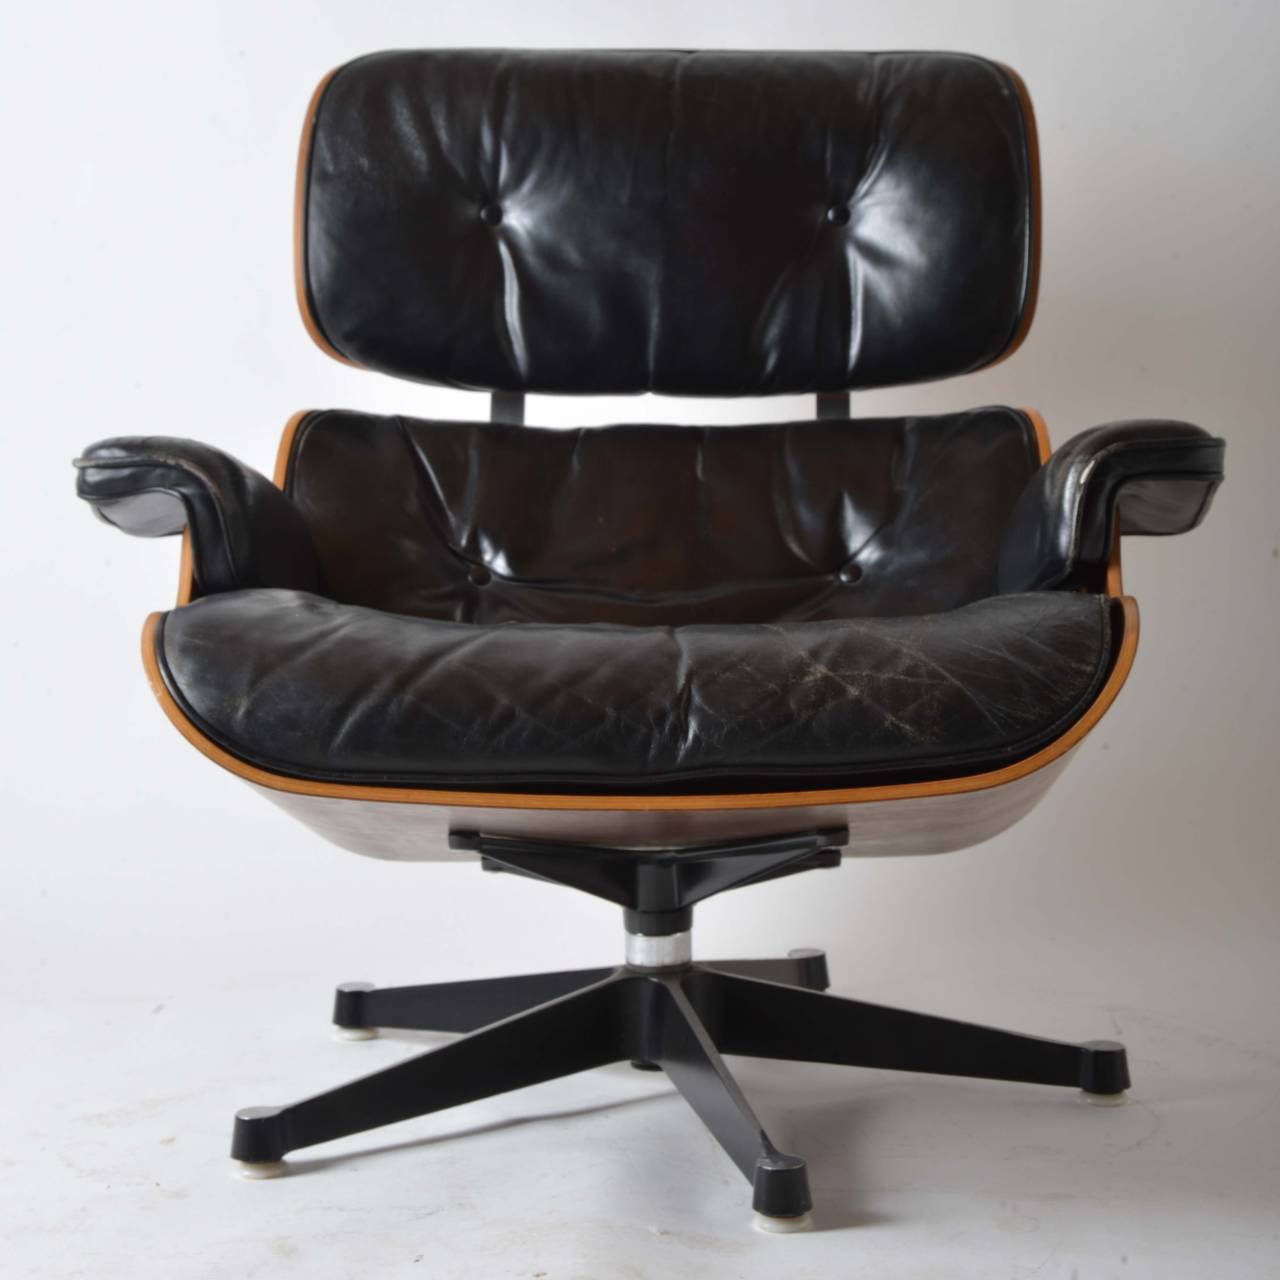 Iconic Eames Lounge Chair For Herman Miller For Sale At: iconic eames chair